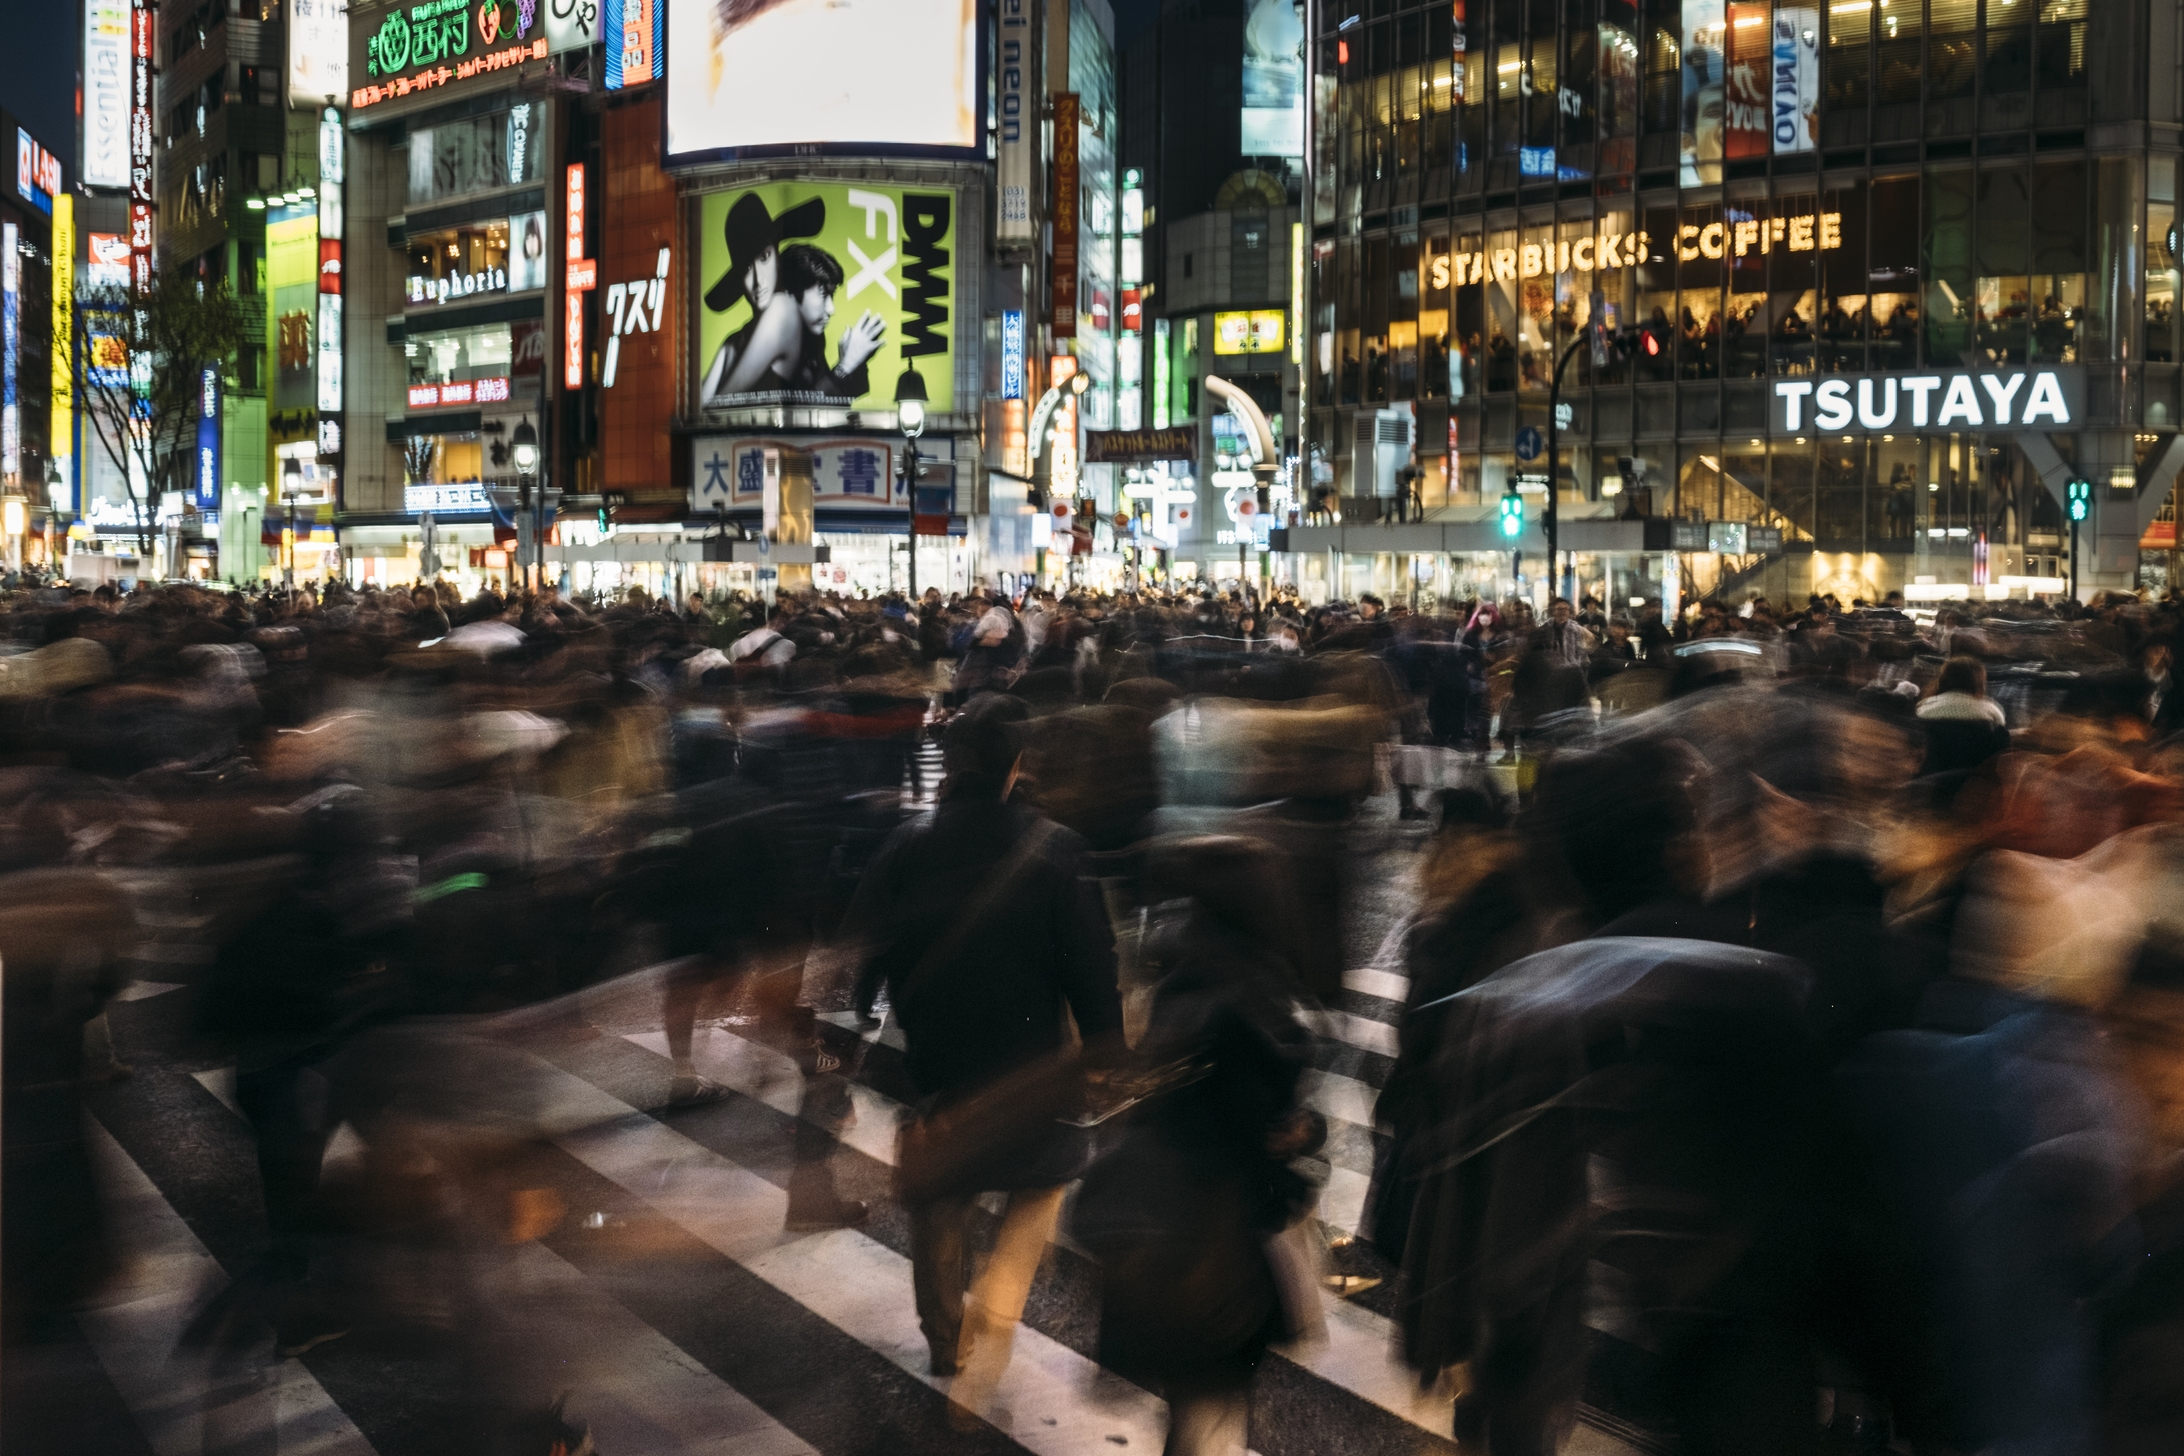 Shibuya Crossing, Tokyo. F/9, 1/2 second, ISO 200,   23mm. (No room for tripod, even if I did bring one! Did the best I could.)